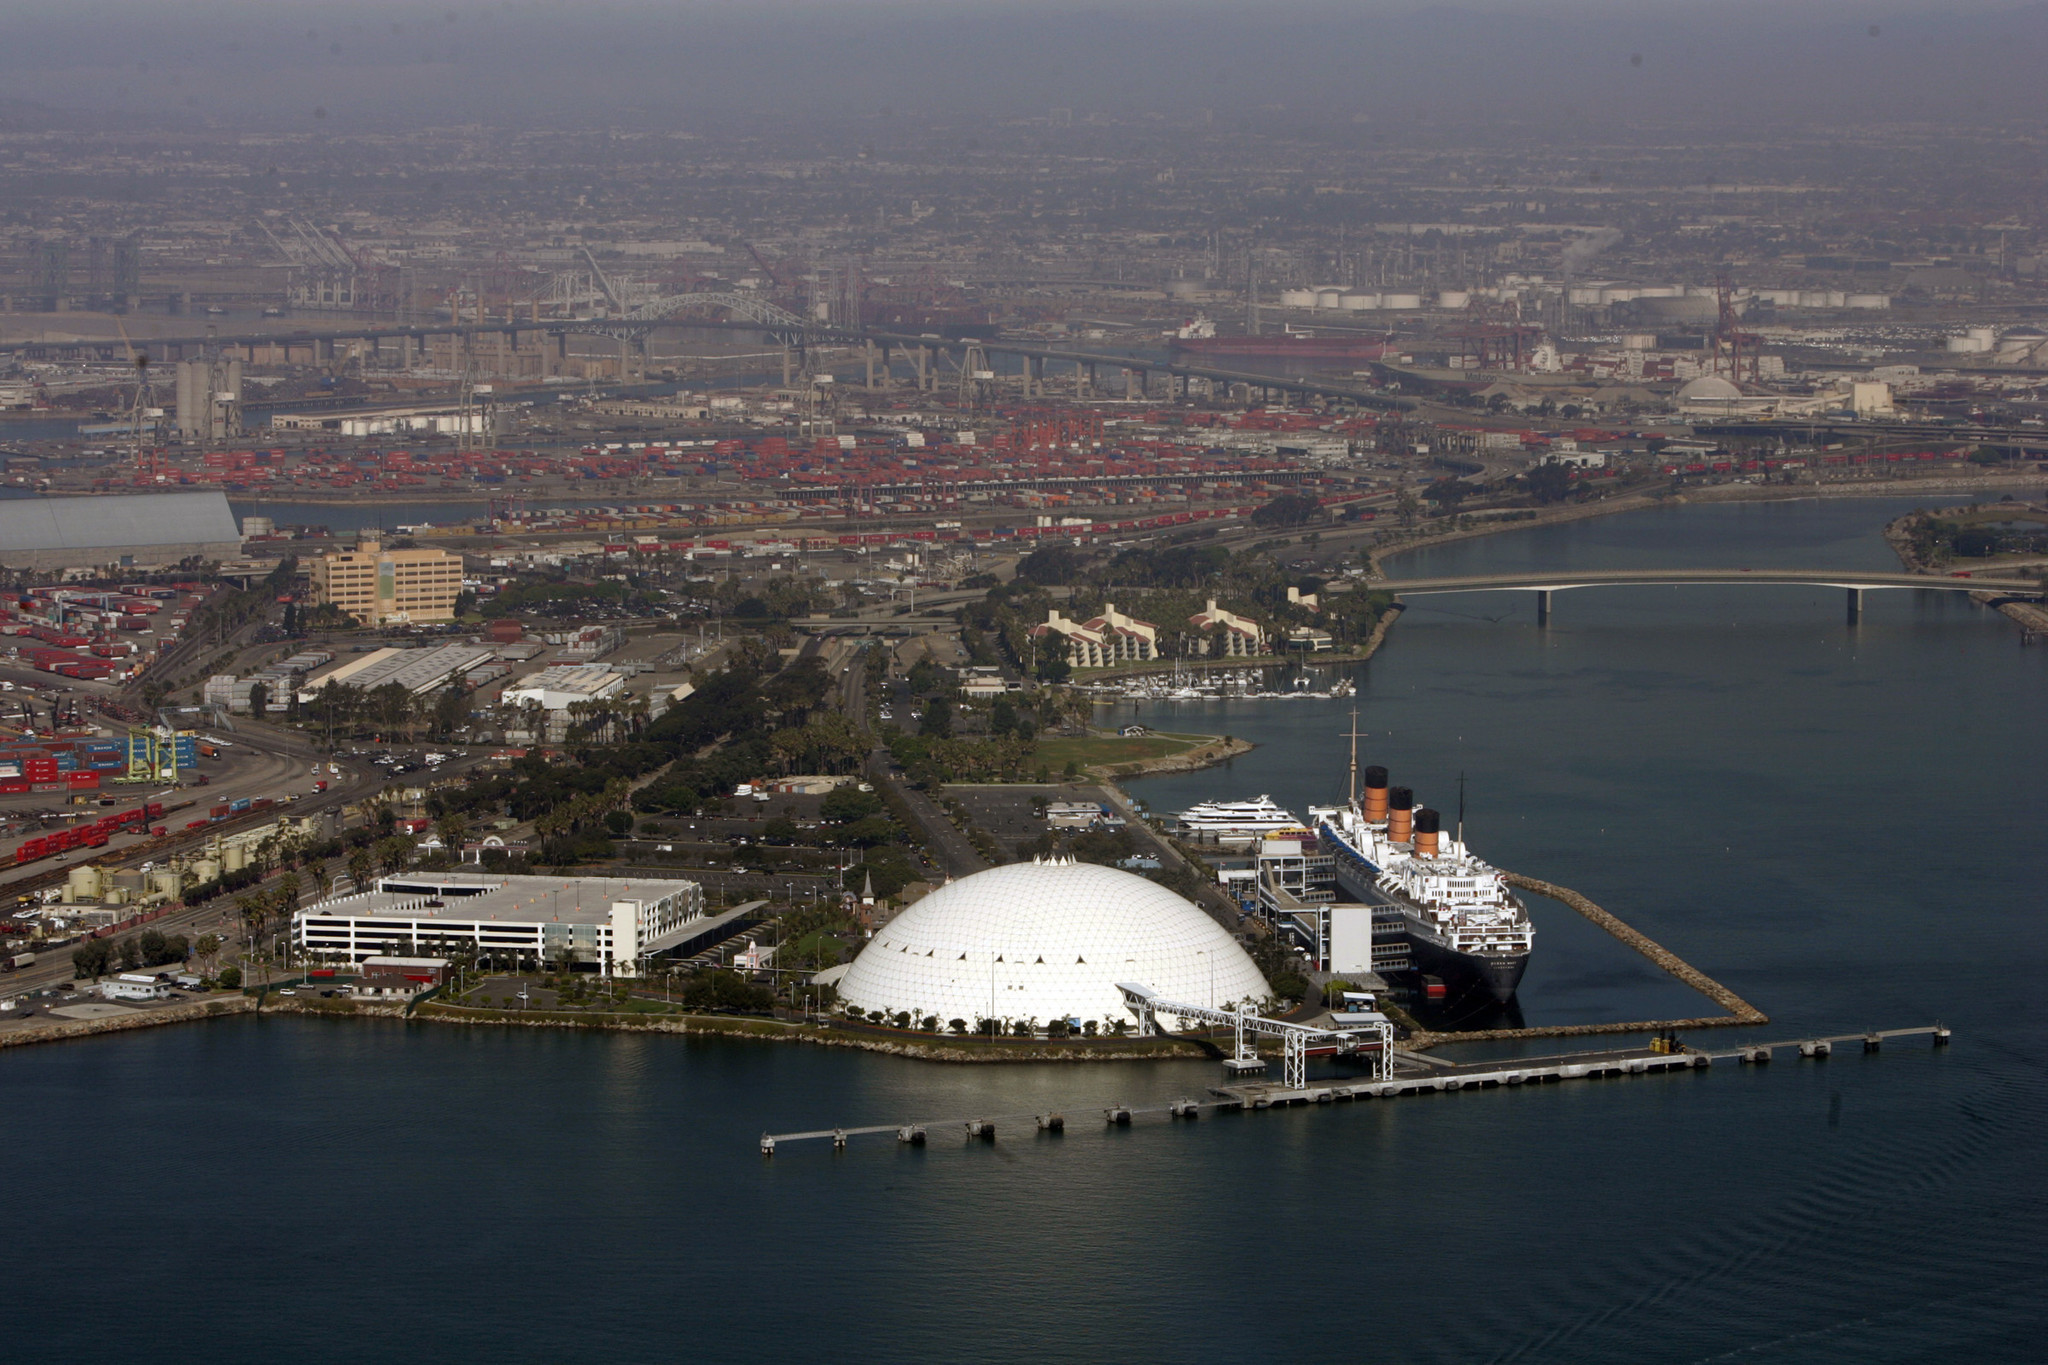 Carnival Is Set To Take Over The Spruce Goose Dome Expanding Its Long Beach